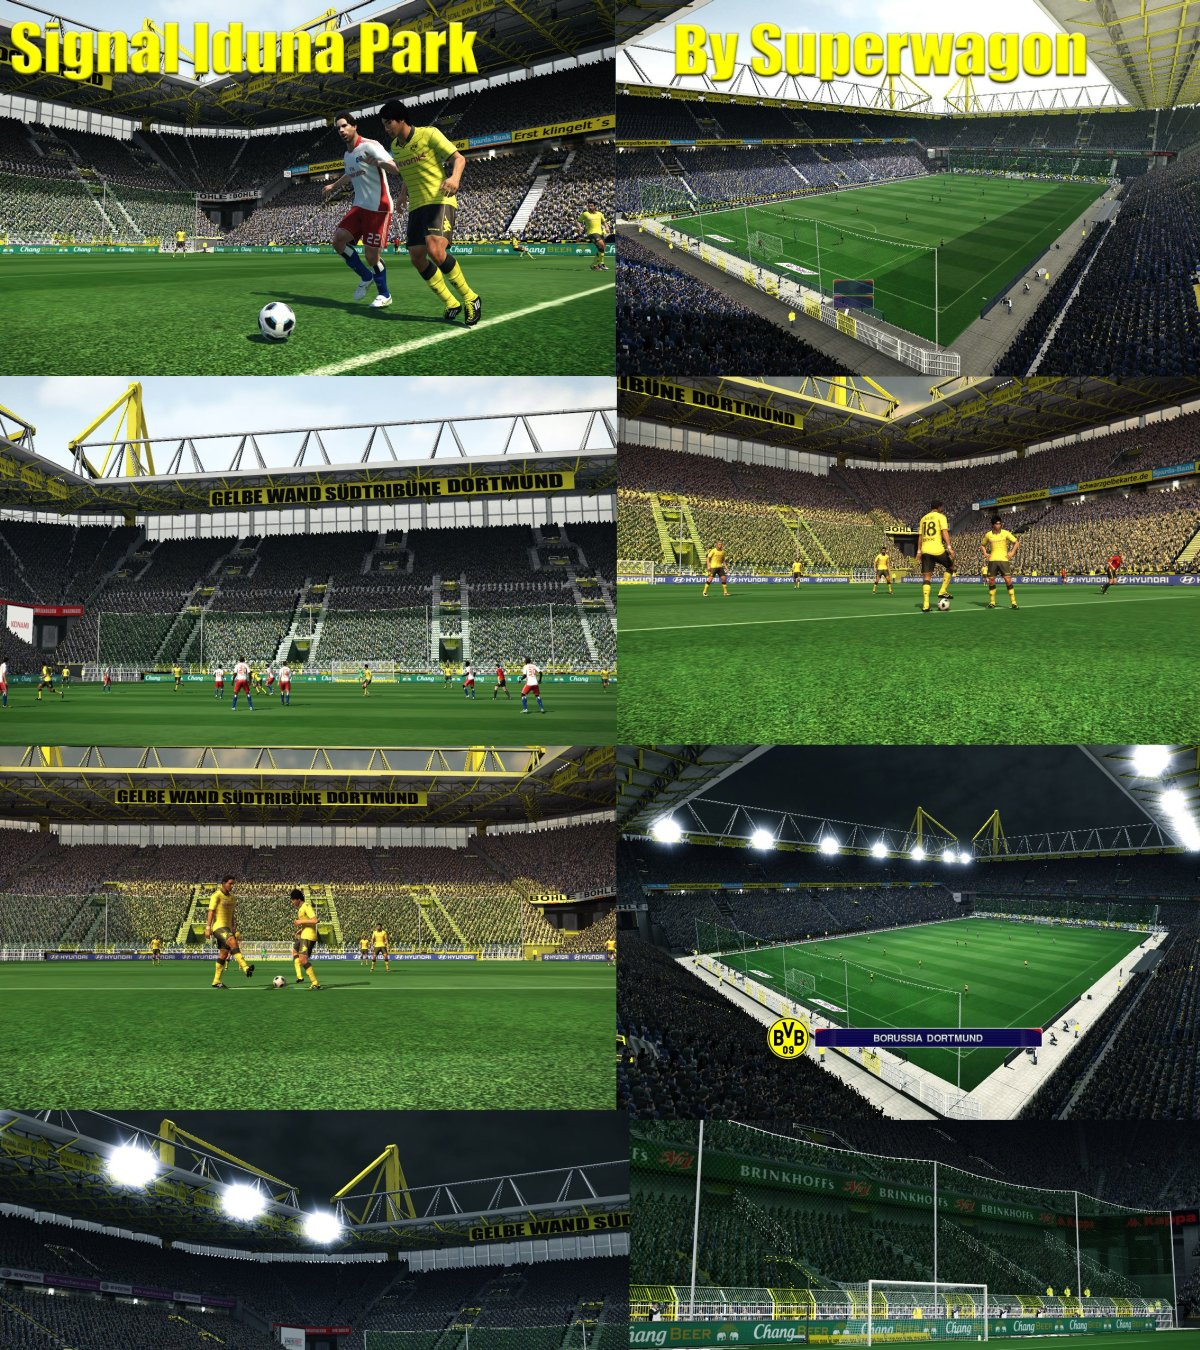 pes 2011 borrusia dortmund signal iduna park by superwagon pespatchs. Black Bedroom Furniture Sets. Home Design Ideas